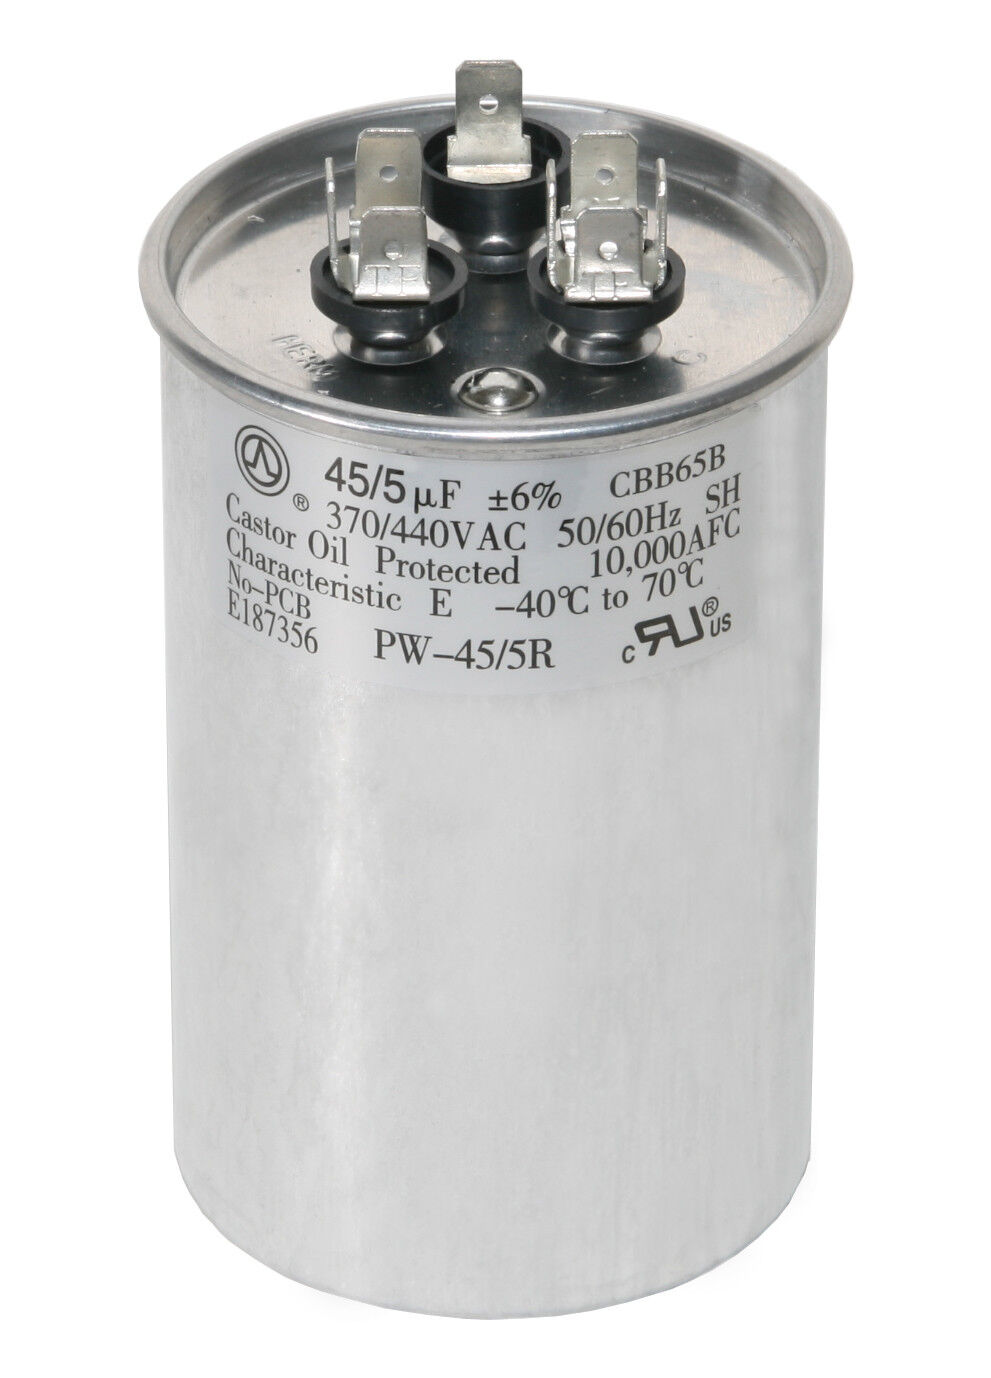 Carrier Replacement 30//4 uf MFD x 370 VAC # 97F9836 Genteq GE Dual Capacitor